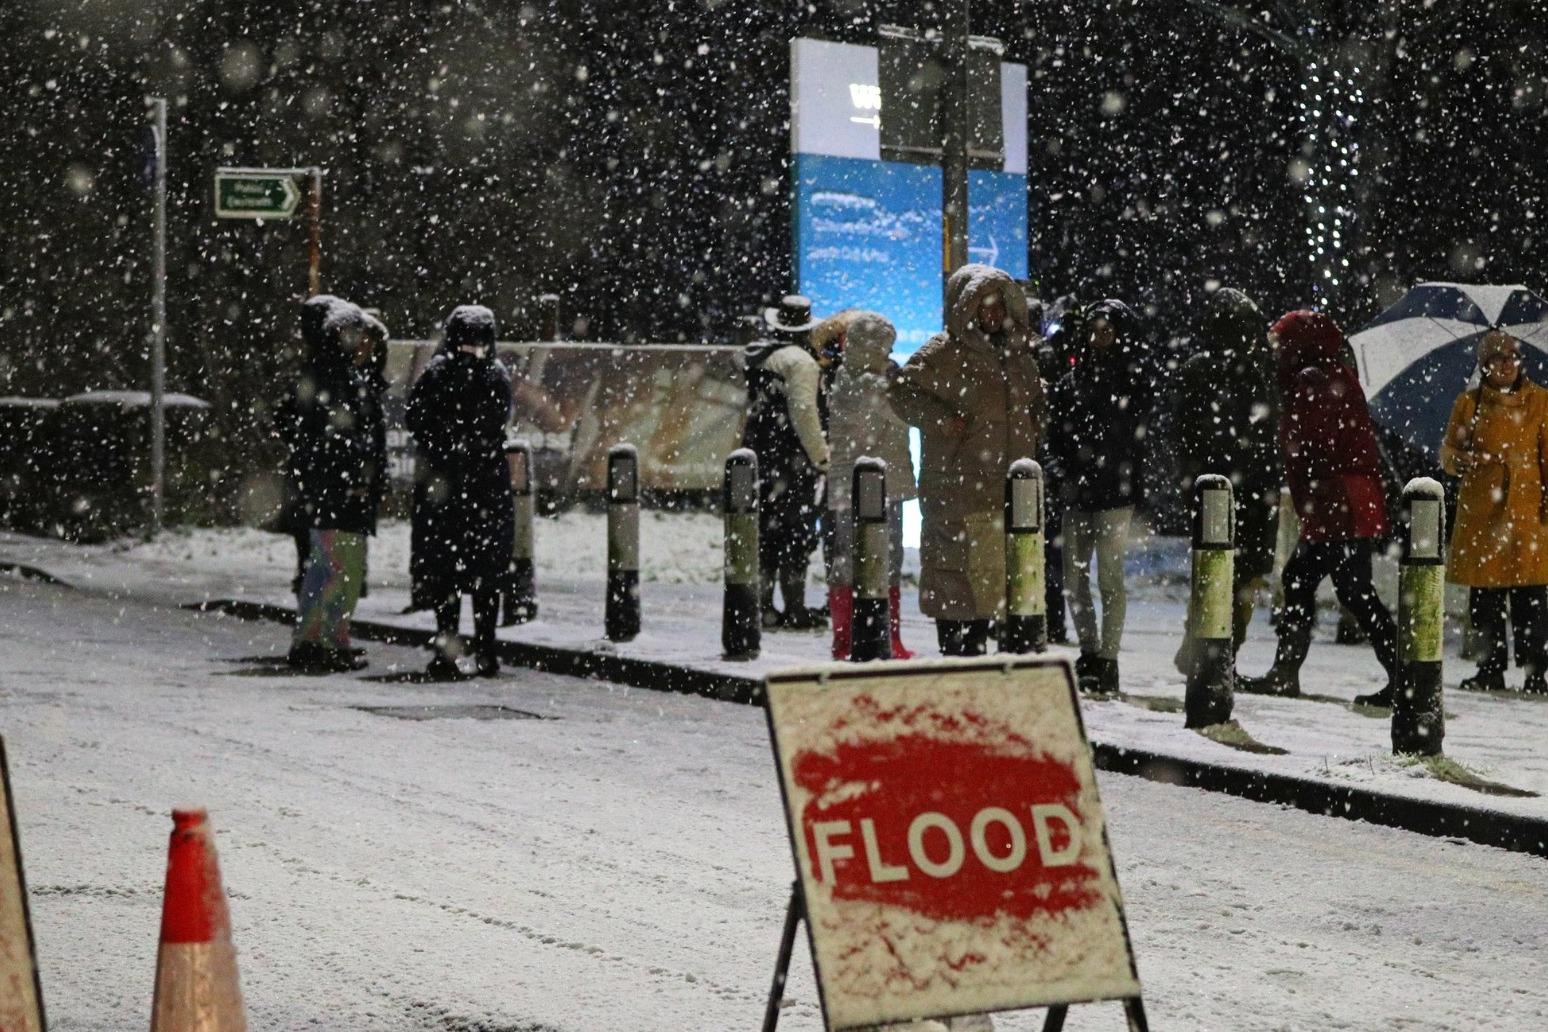 Hundreds evacuated from homes overnight as Storm Christoph causes flooding